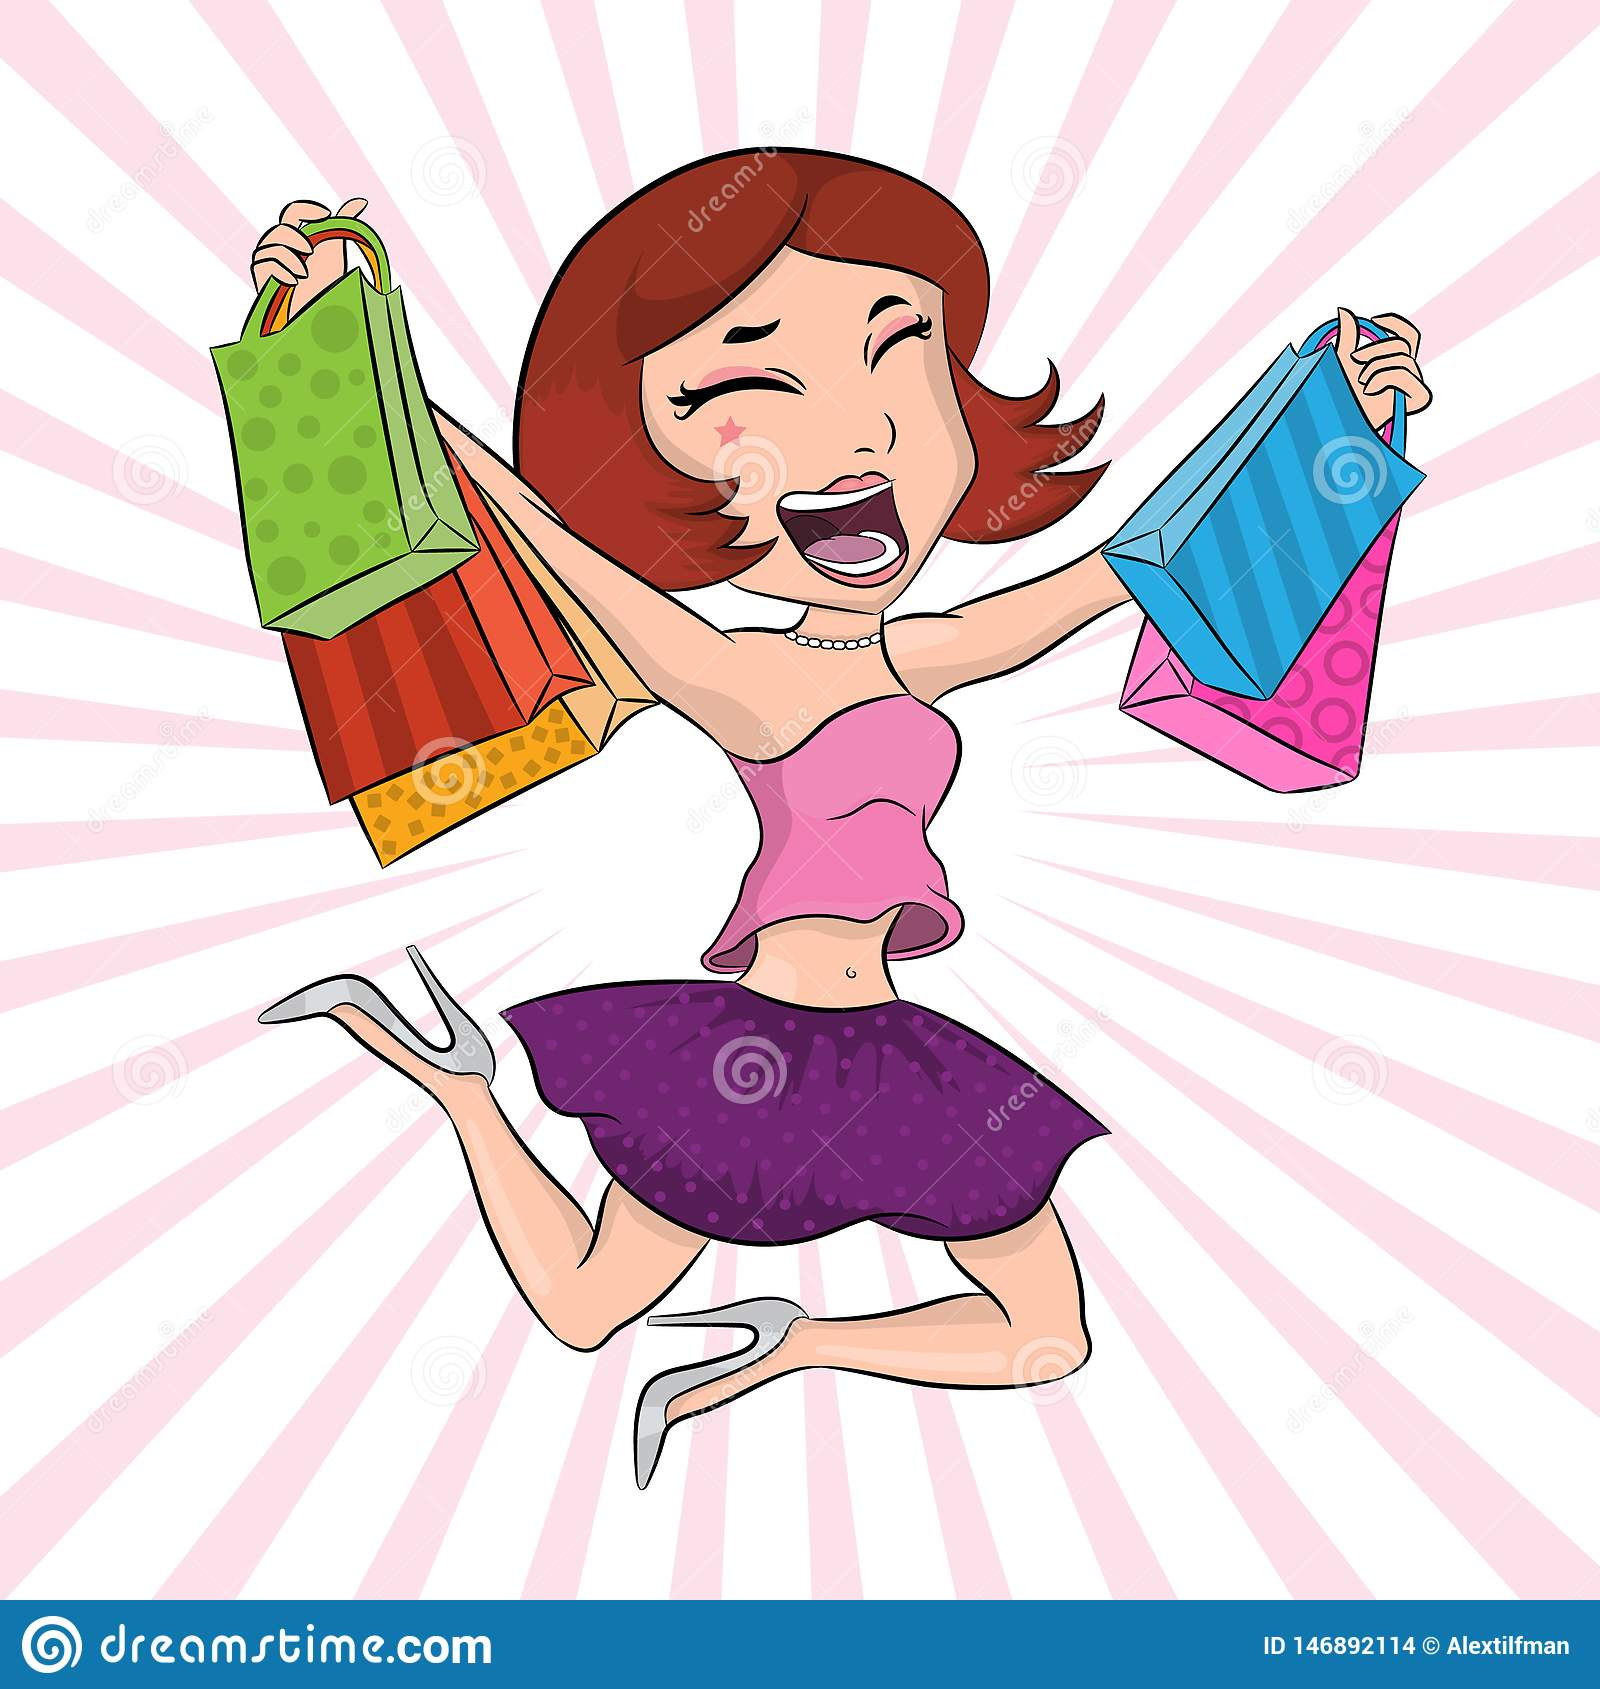 Very happy girl with paper bags after shopping jumping and having fun, beautiful girl poster, fashion and style banner, pretty wom